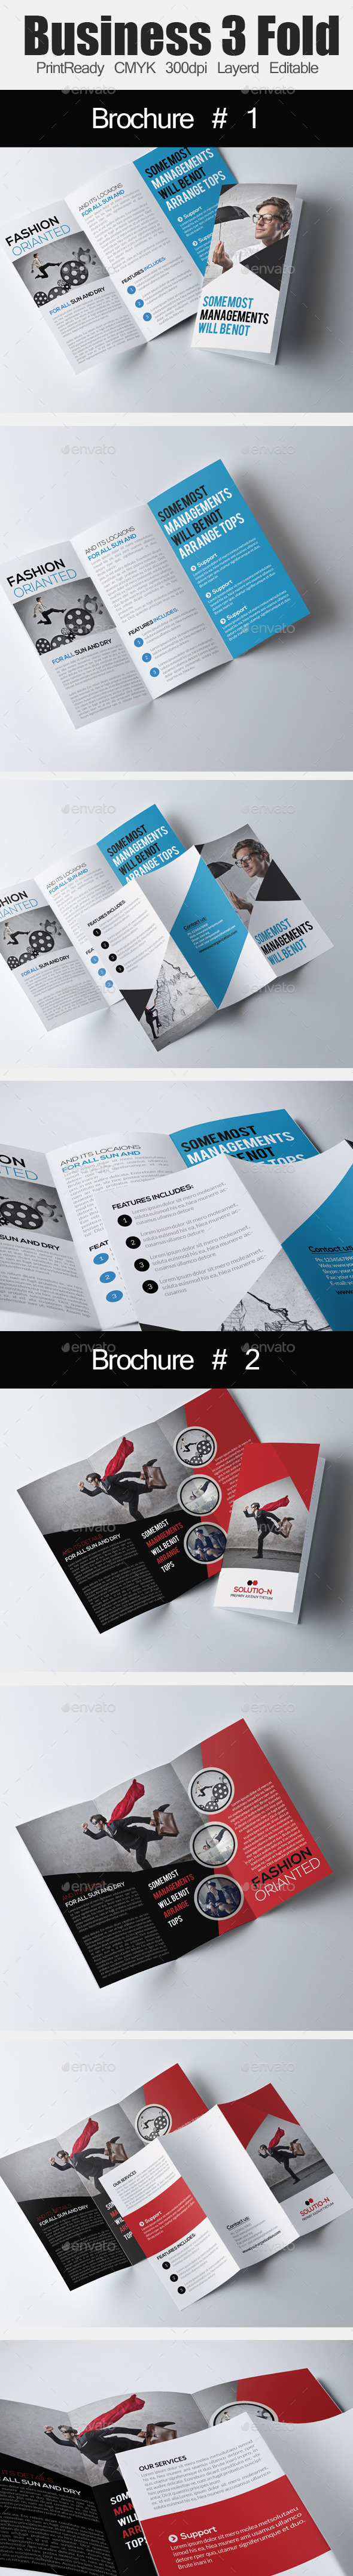 Tri Fold Business Brochure Bundle